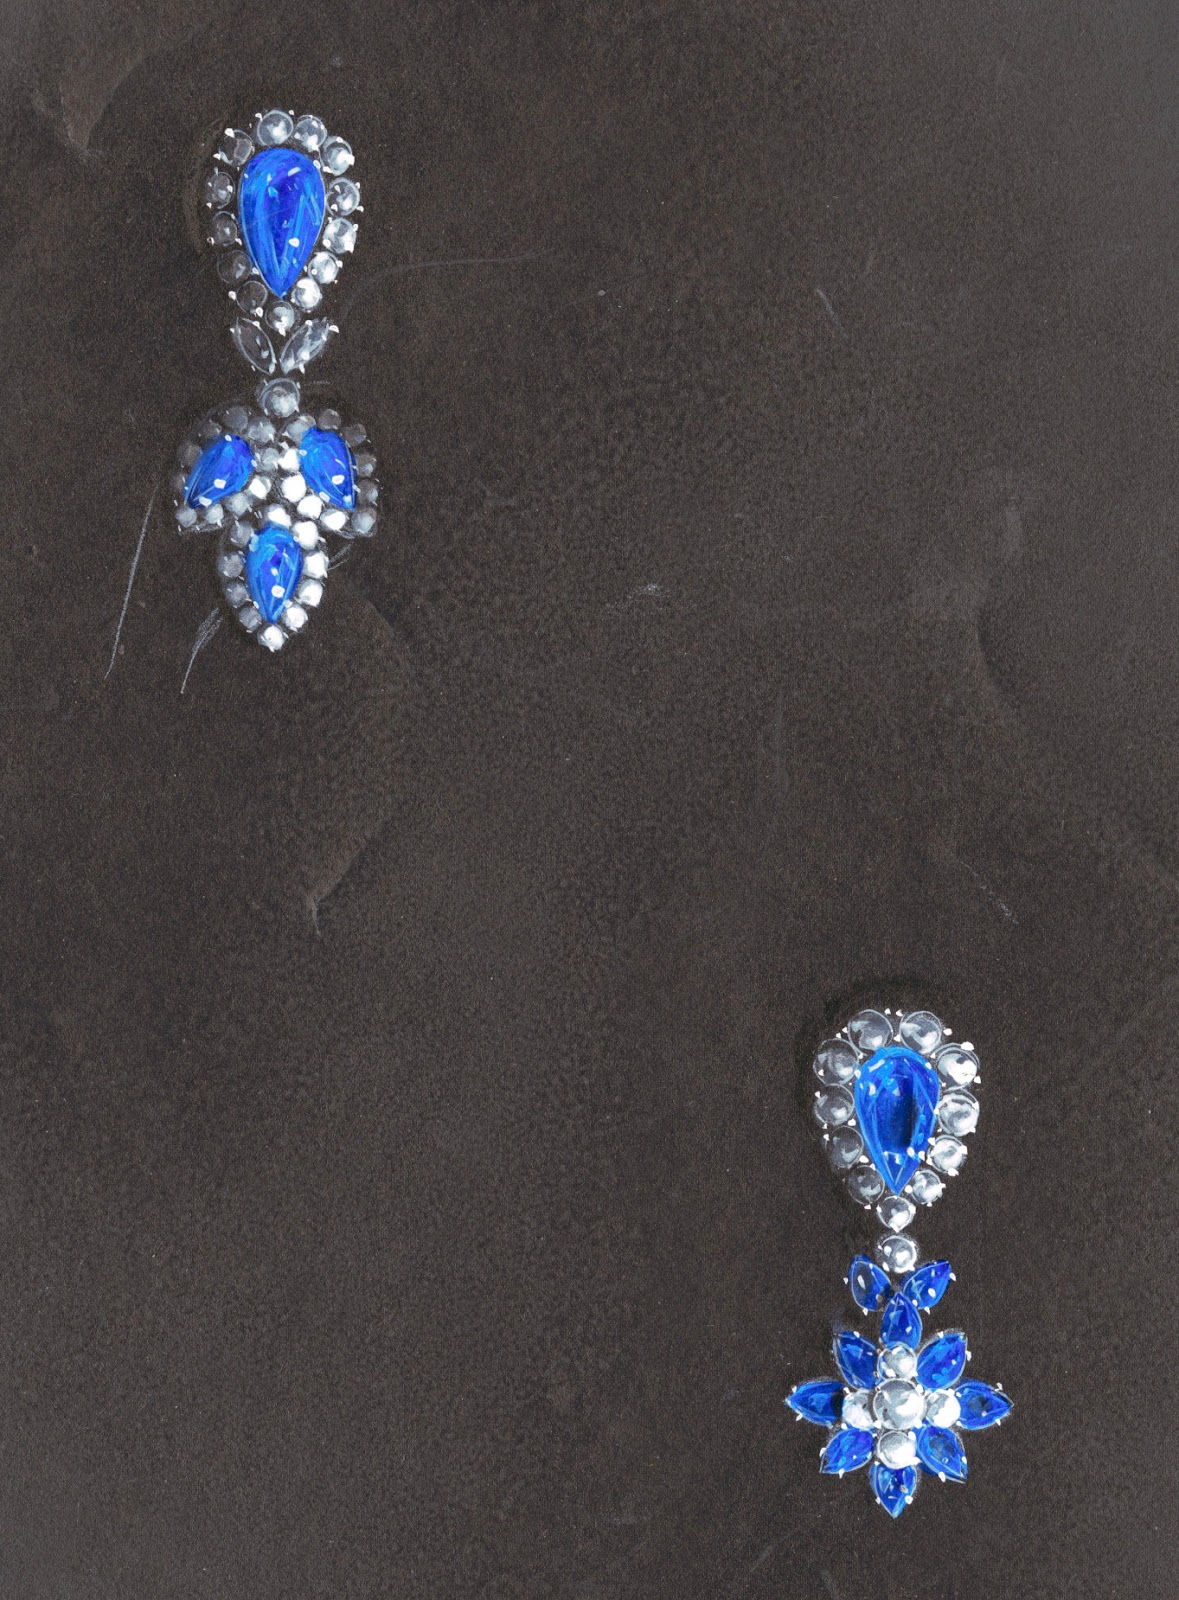 A drawn set of earrings or brooches in blue and white.